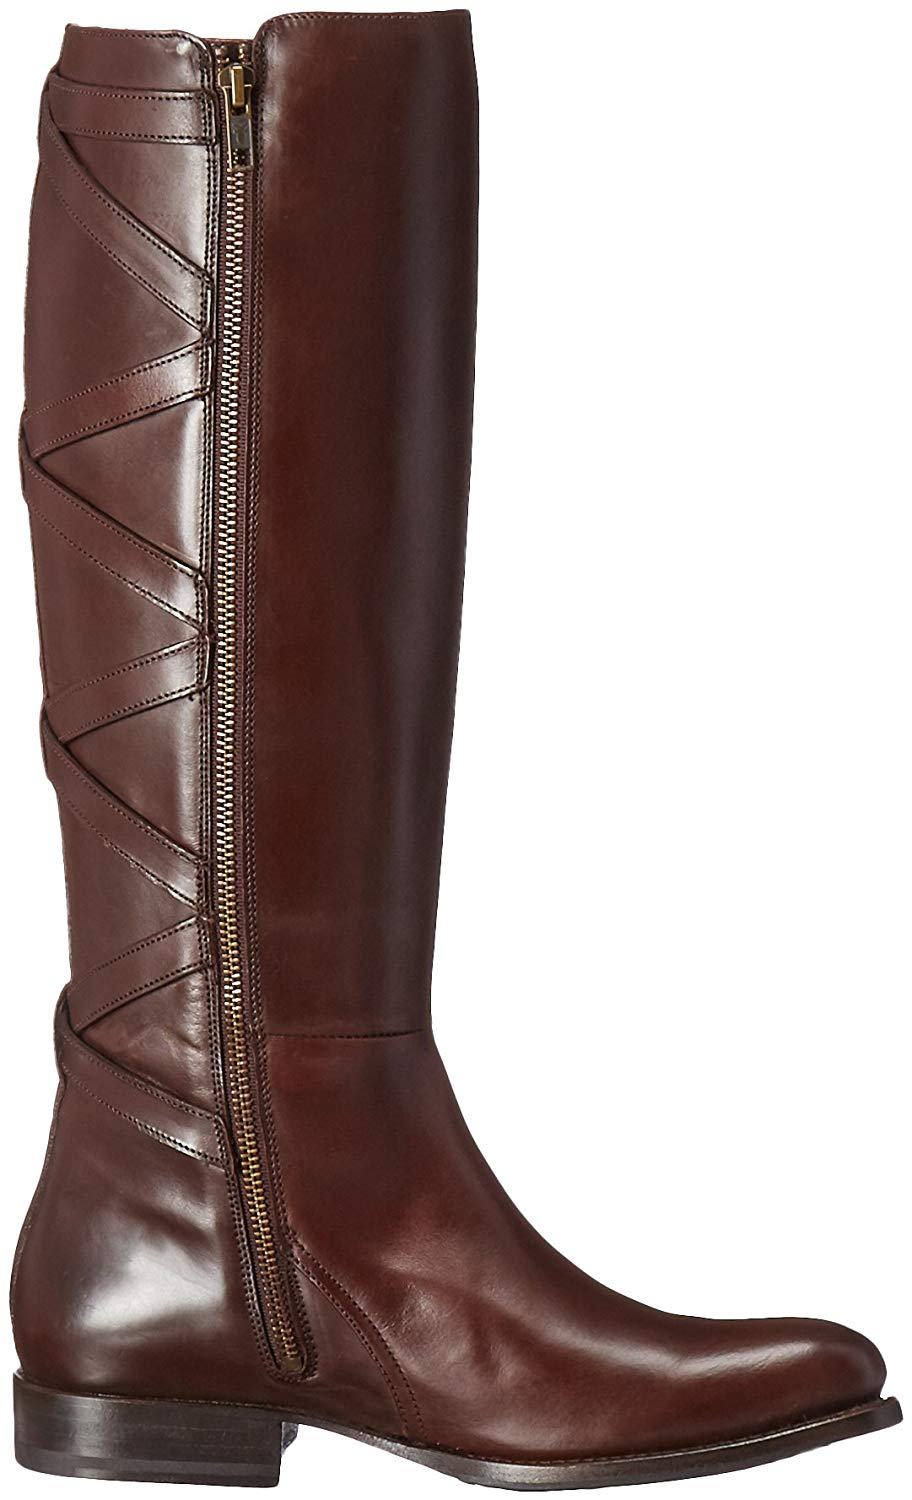 FRYE Women's Jordan Strappy Tall Riding Boot